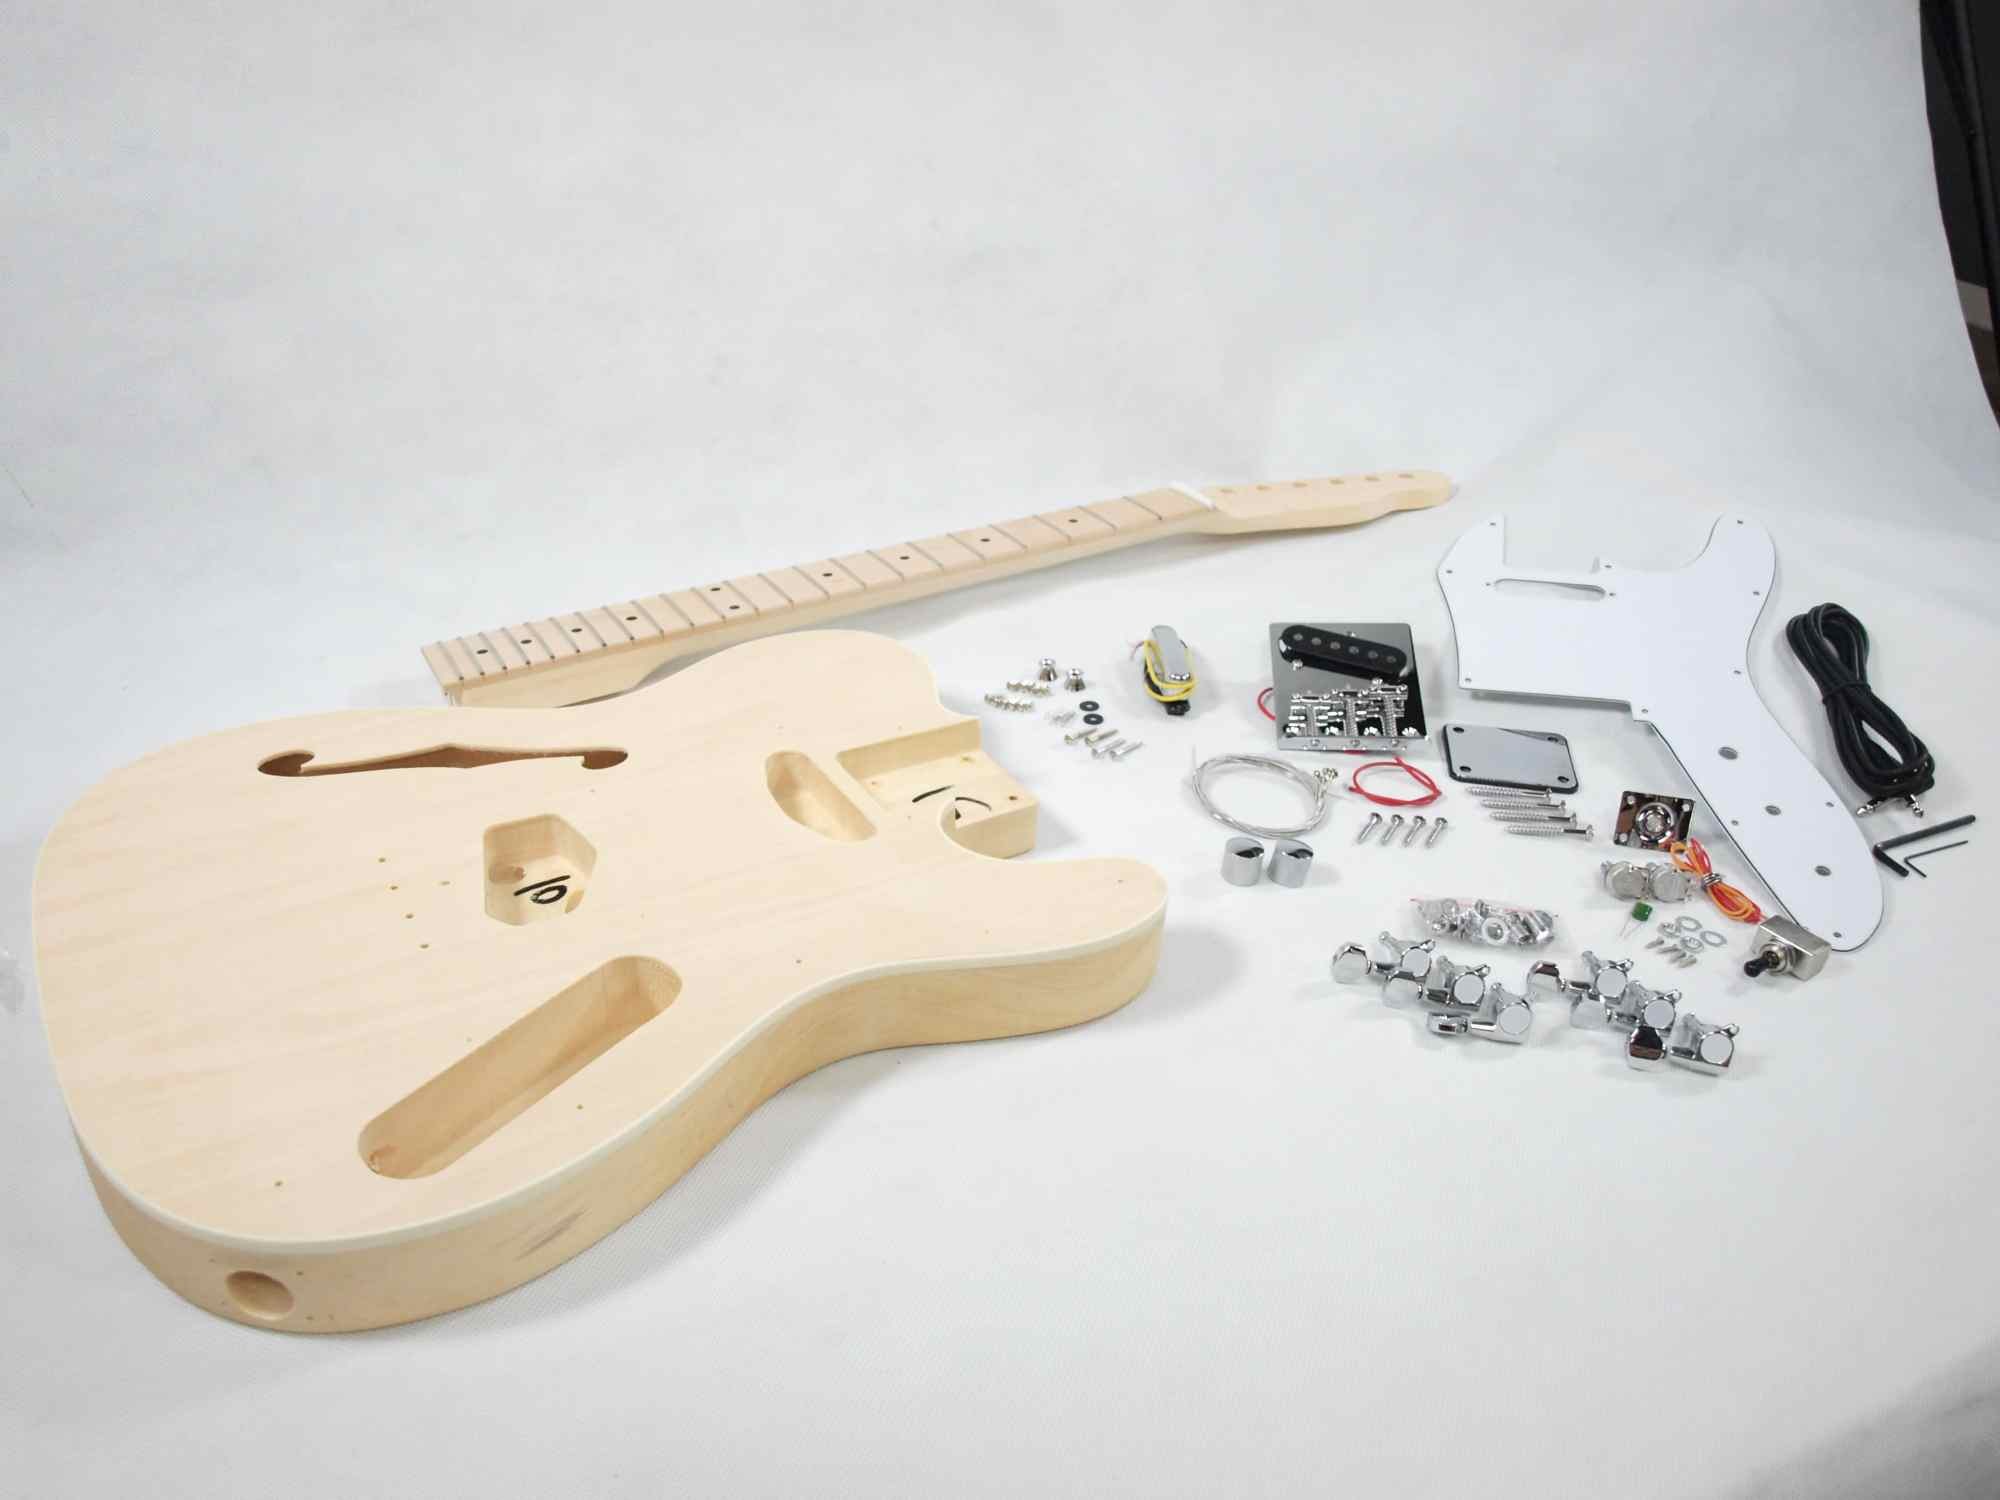 hight resolution of solo tc style diy guitar kit semi hollow maple top maple neck diy guitar kits semi hollow body guitar wiring diagrams